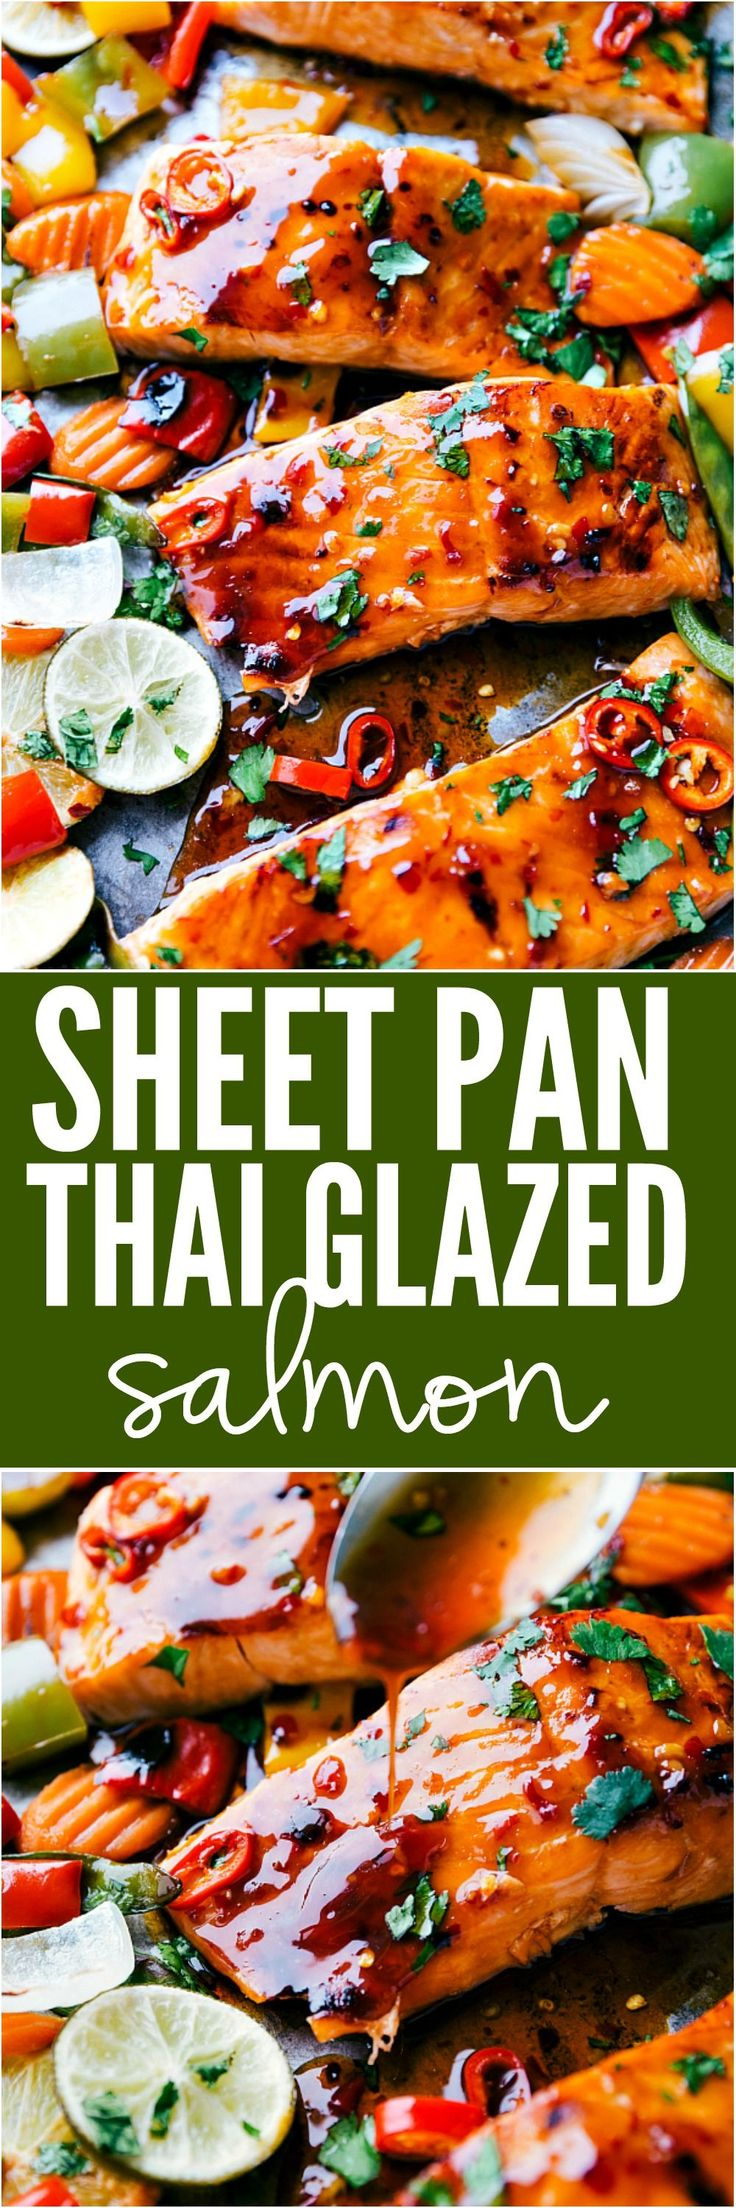 Sheet Pan Thai Glazed Salmon with Vegetables is an incredible all in one meal that has the best flavor. Melt in your mouth Salmon gets glazed with a sweet thai sauce and is surrounded by crisp and tender veggies. This meal is a winner!